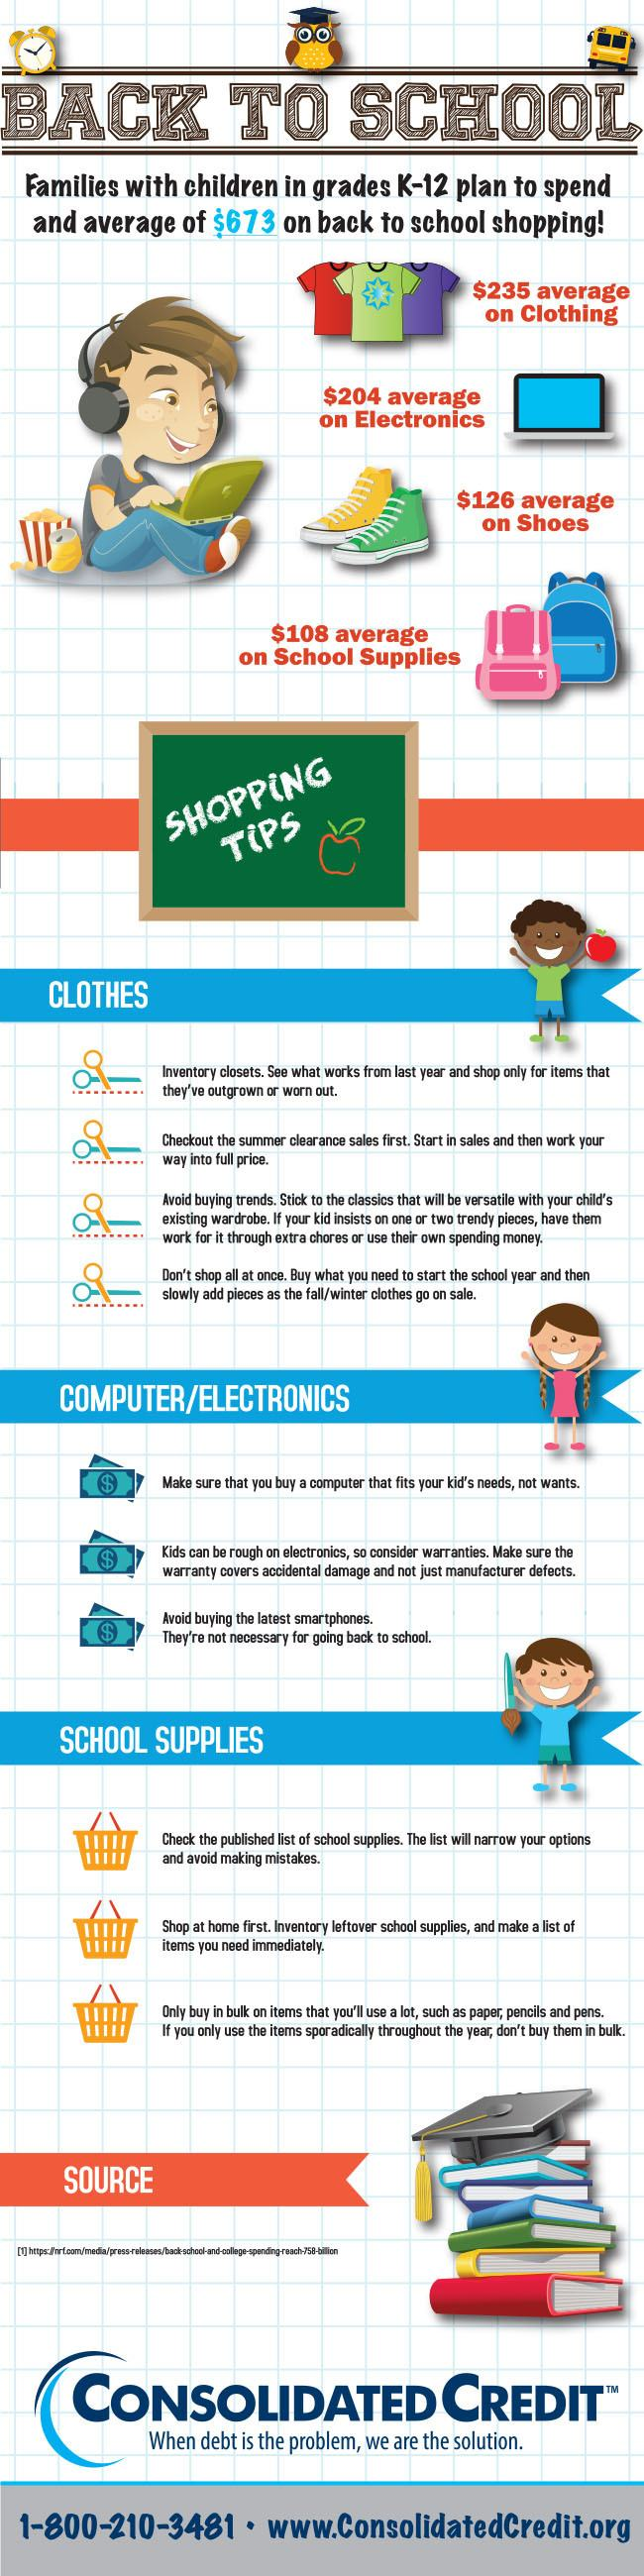 2016 Back to School Shopping Infographic